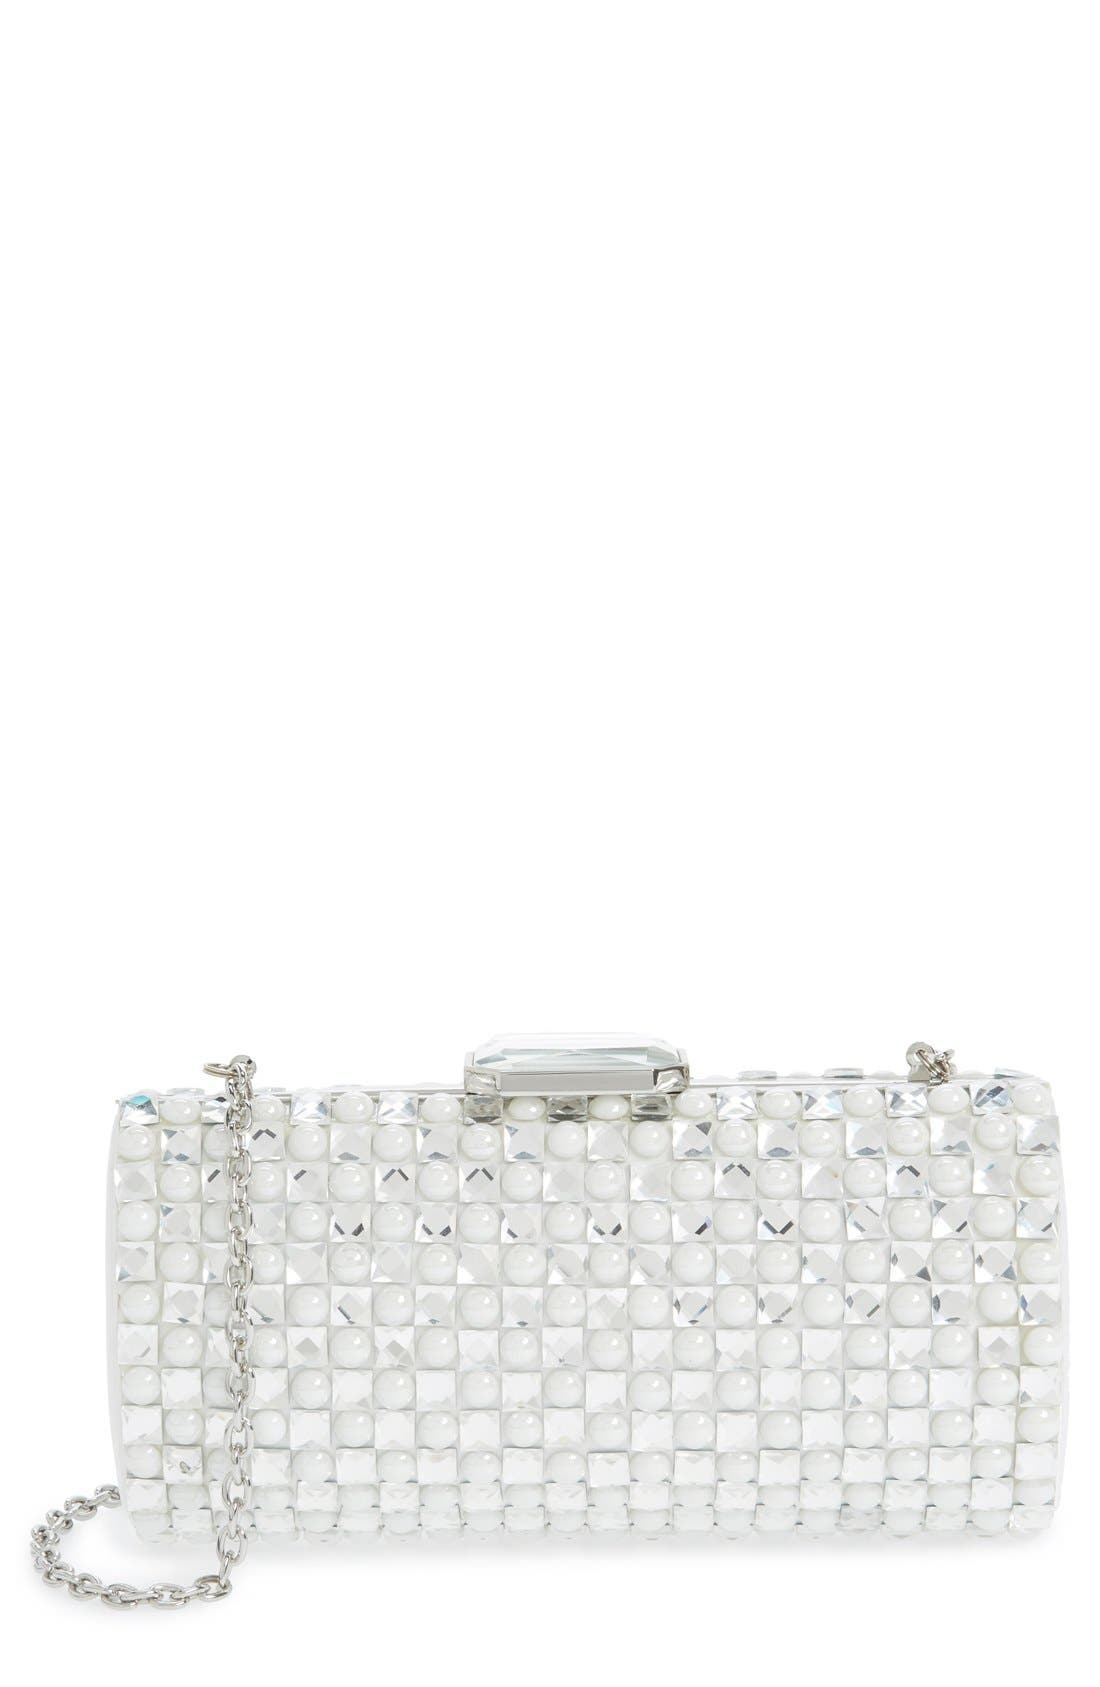 Crystal Clutch,                         Main,                         color, Silver/White